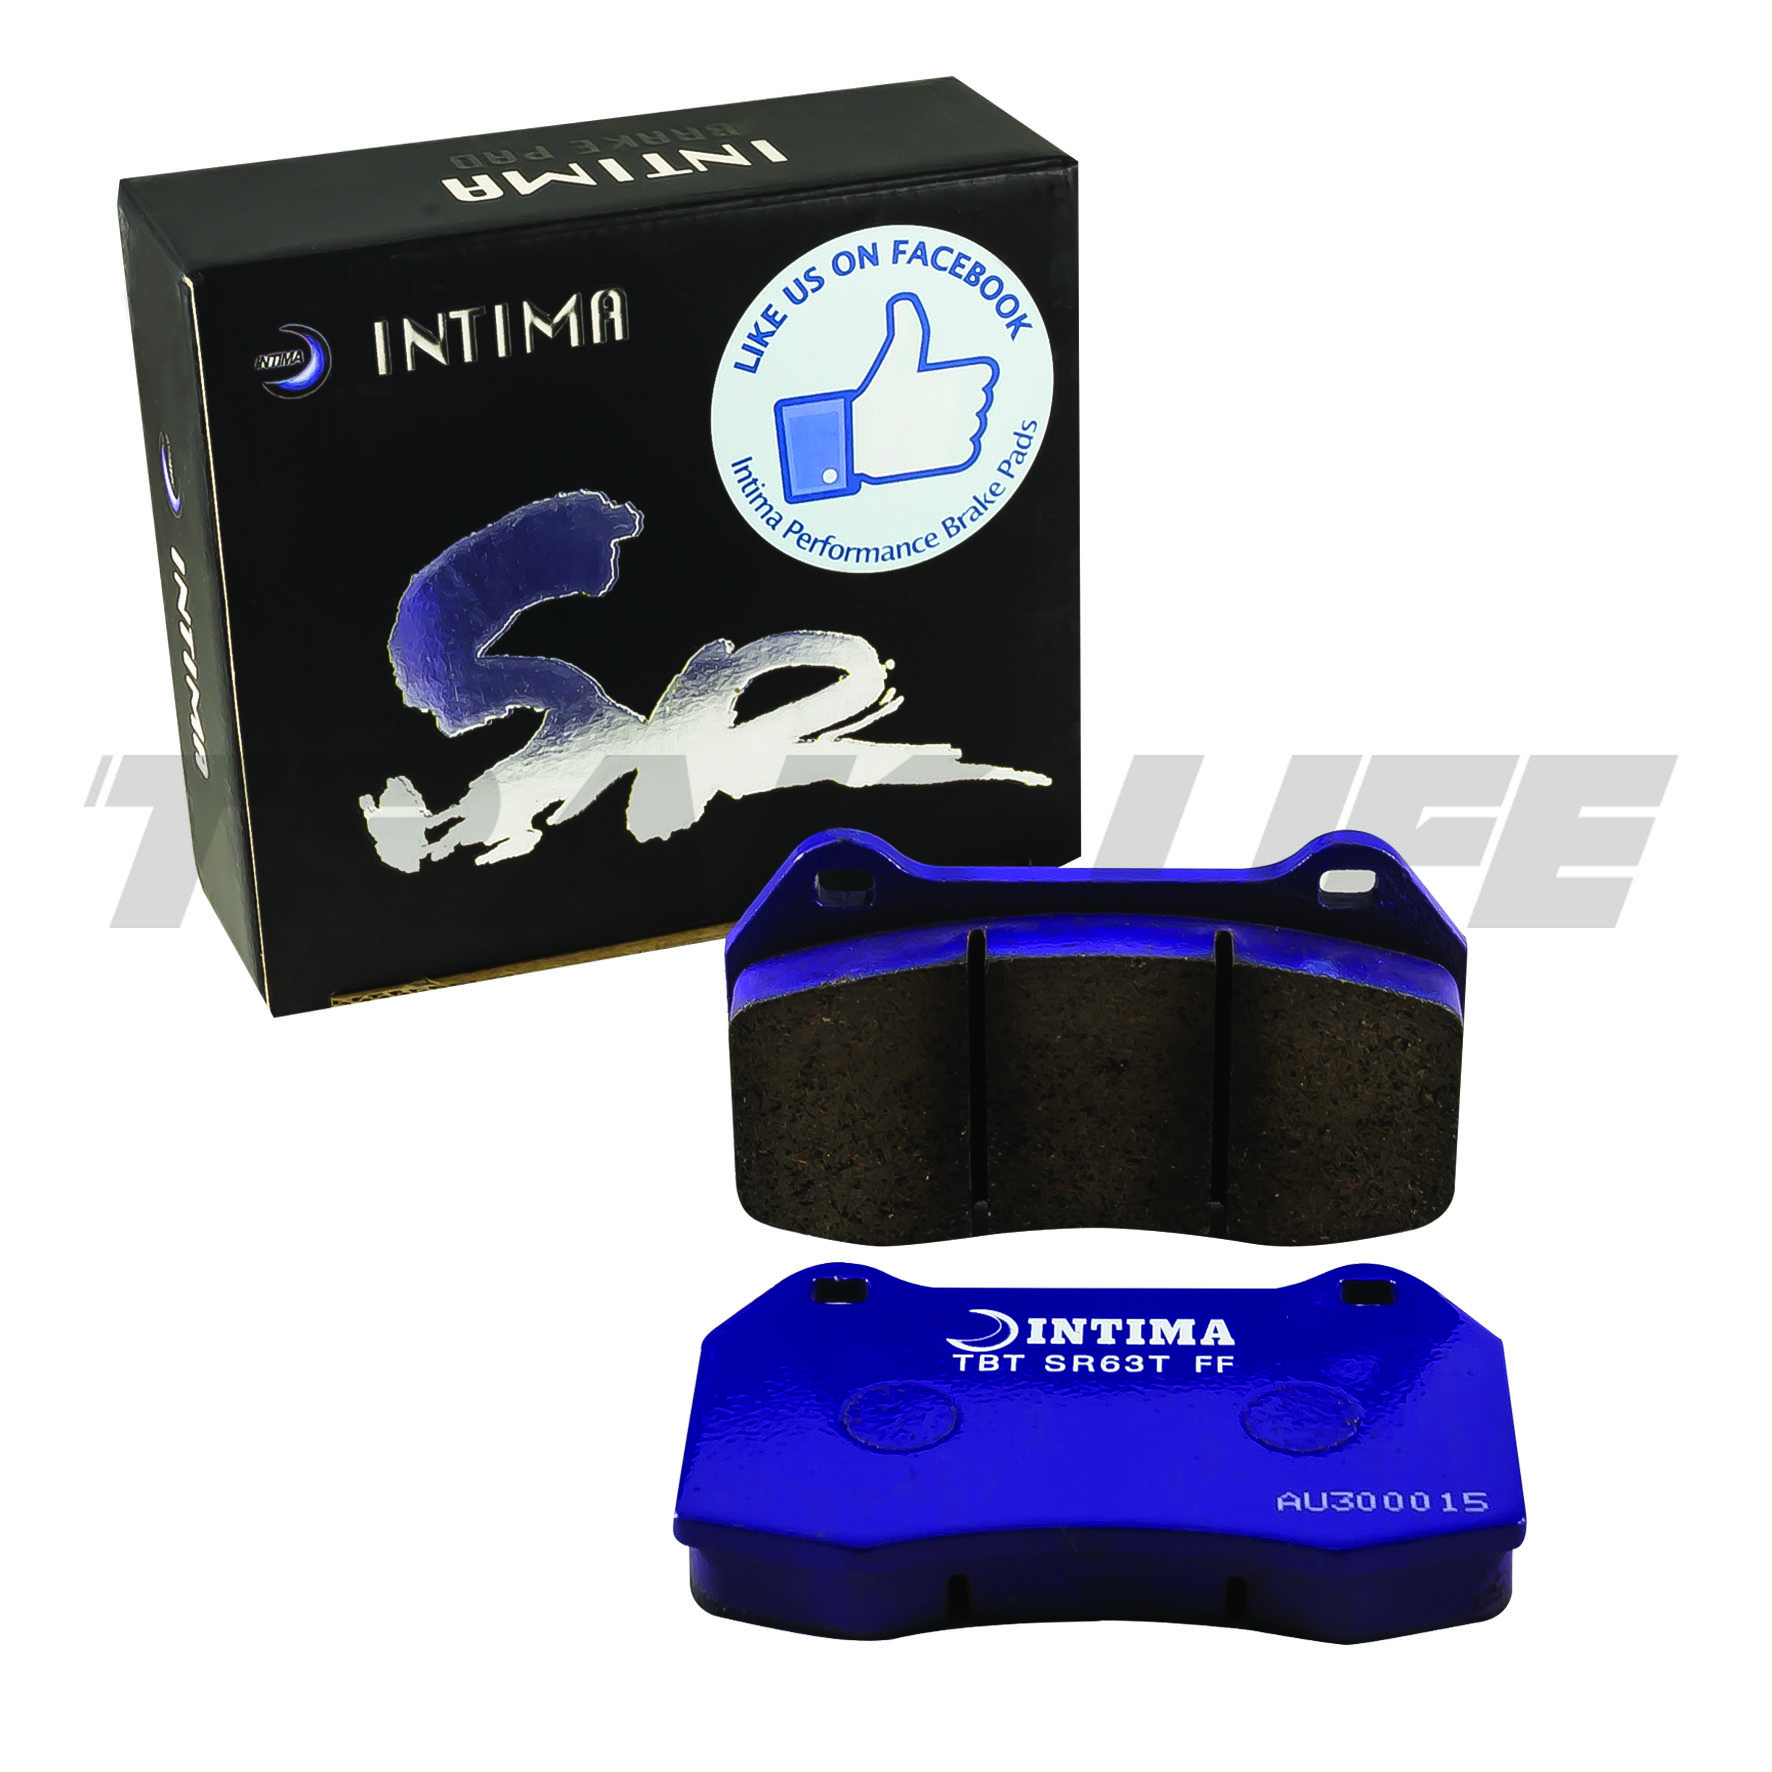 Intima SR Front Brake Pads for IS200, IS300, GS300, Supra JZA80 2 pot,  Soarer, JZX90, JZX100 & Aristo